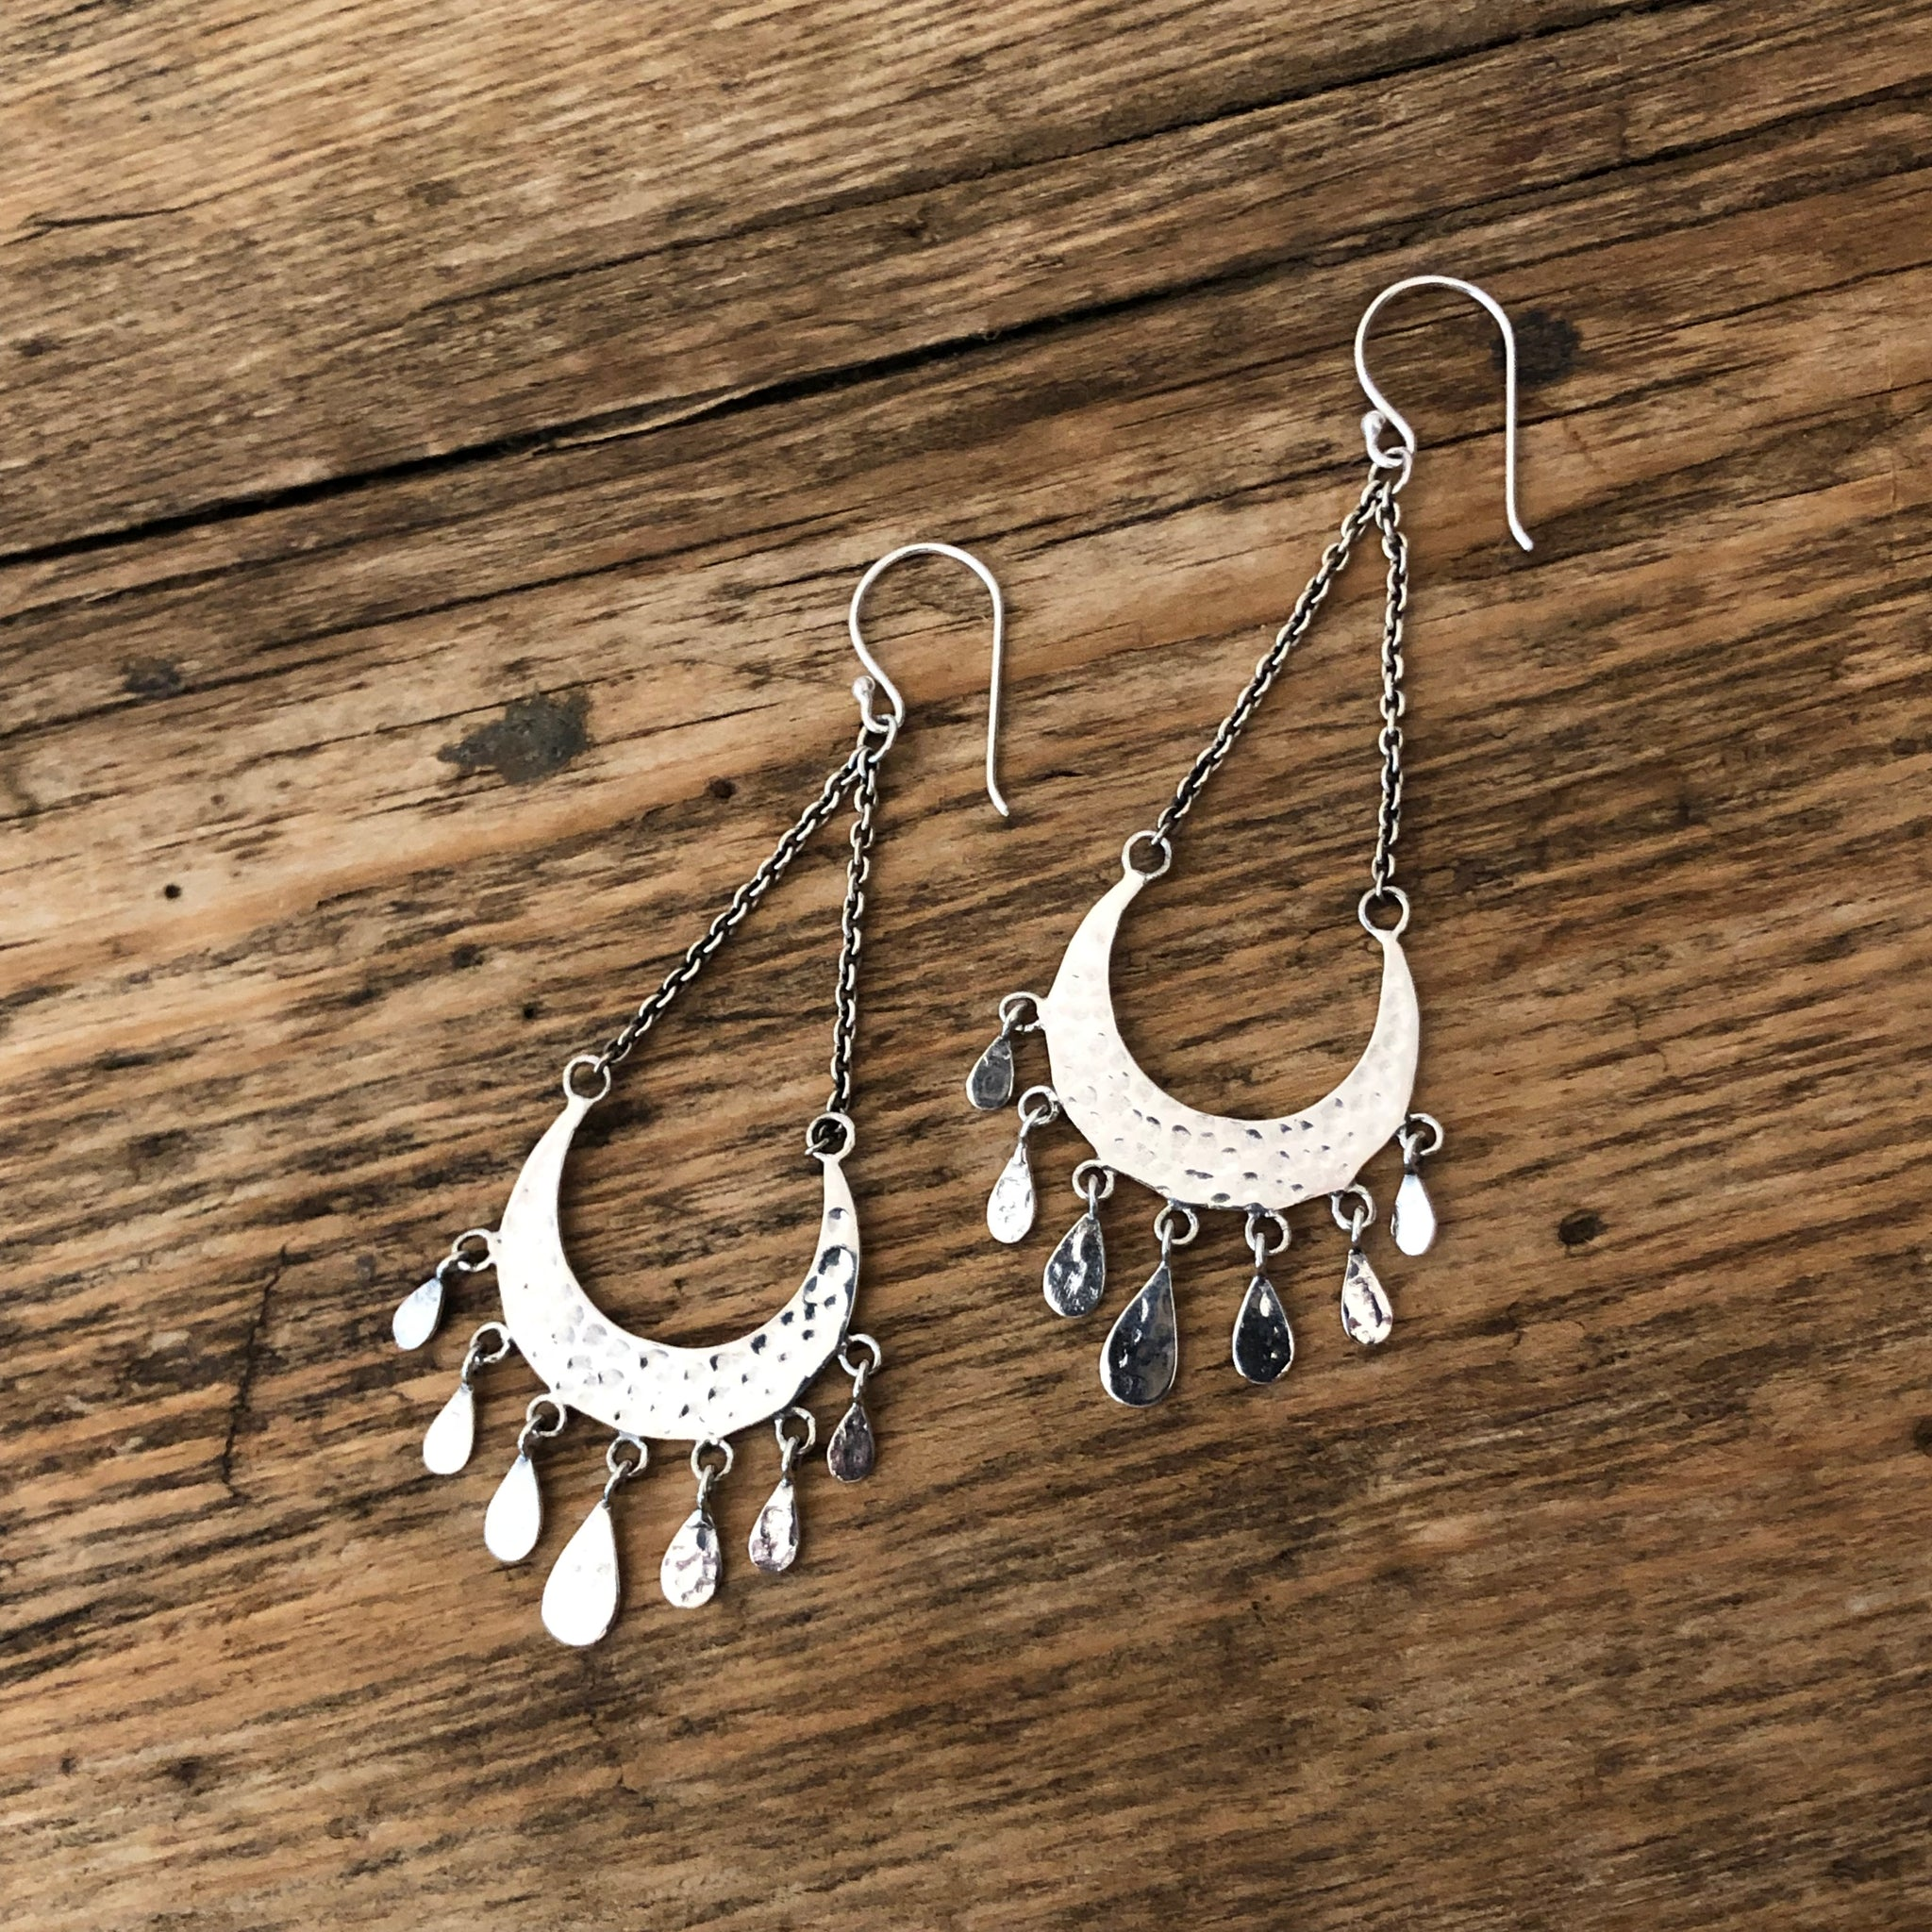 'Gypsy Soul' Earrings